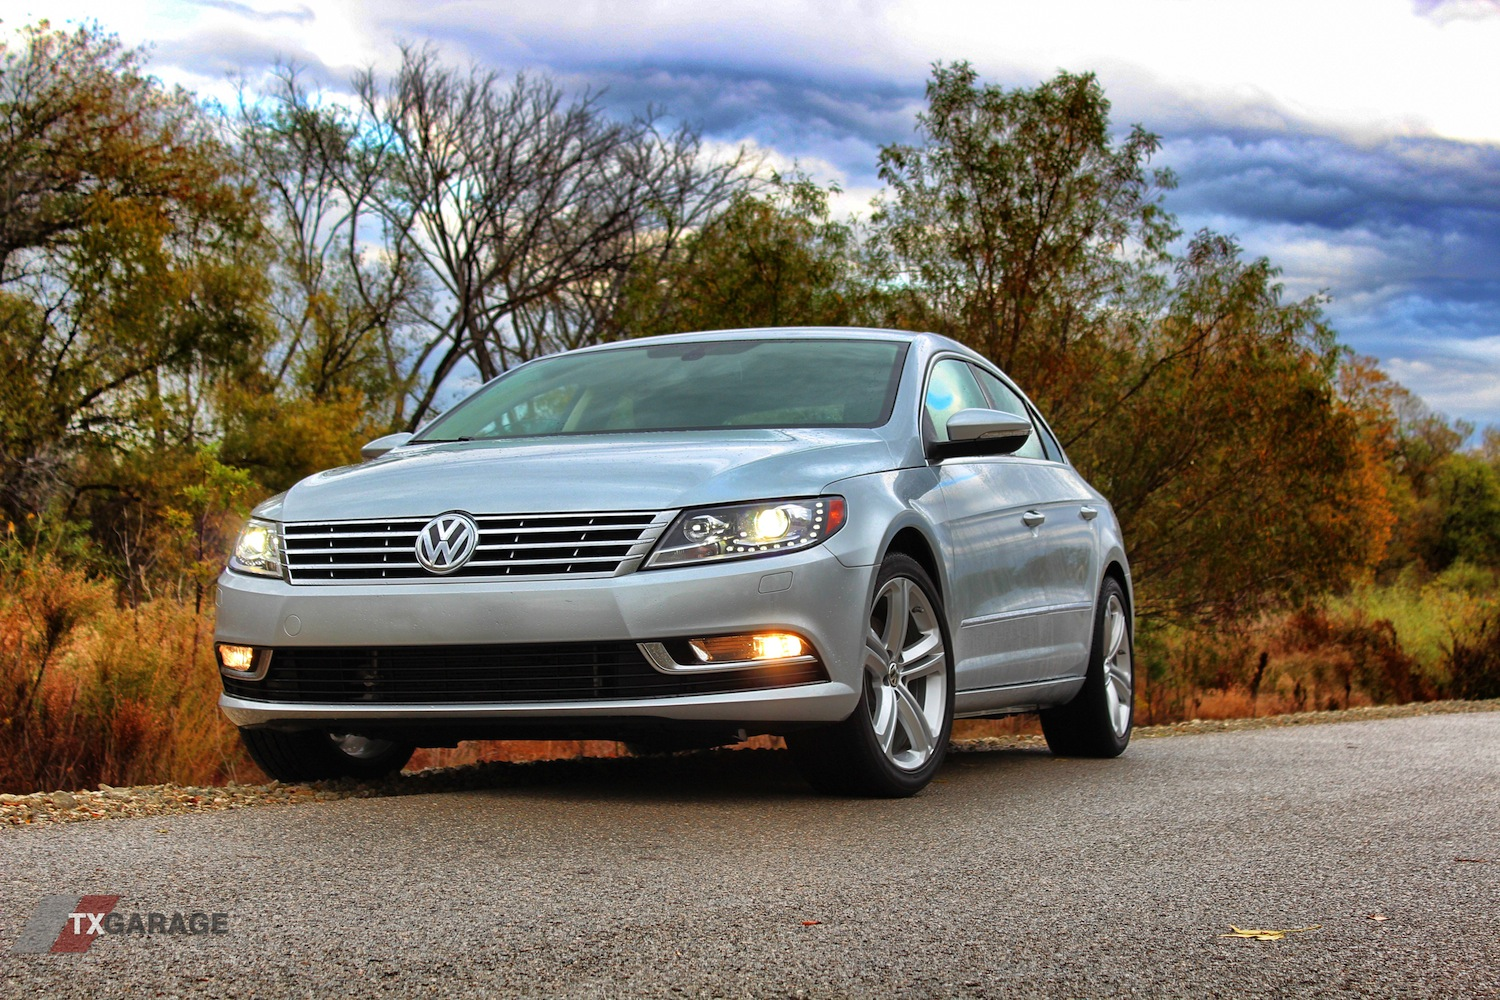 full review of the 2013 volkswagen cc sport plus txgarage. Black Bedroom Furniture Sets. Home Design Ideas